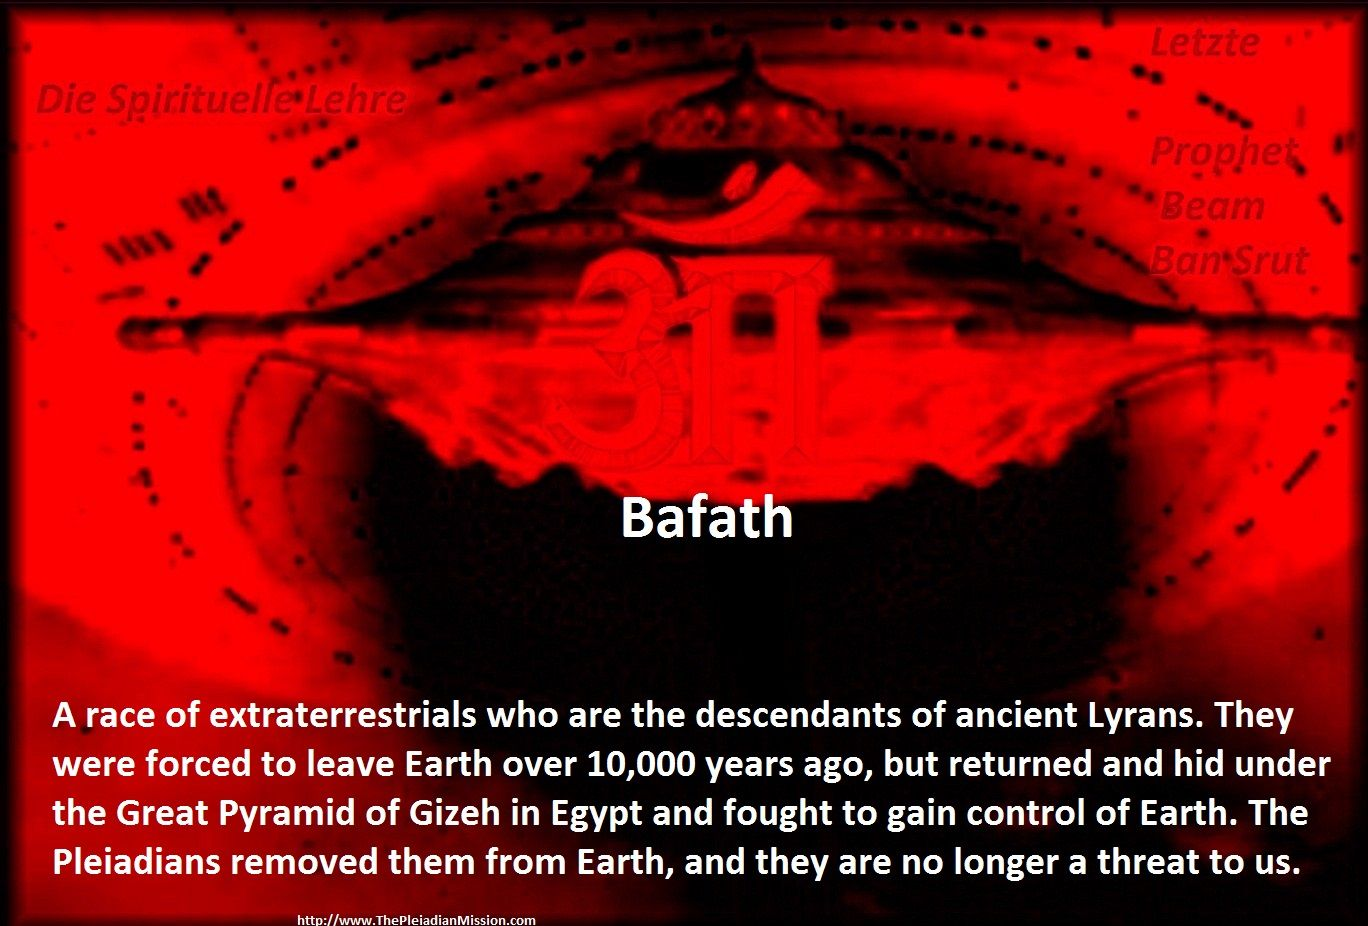 Bafath A race of extraterrestrials who are the descendants